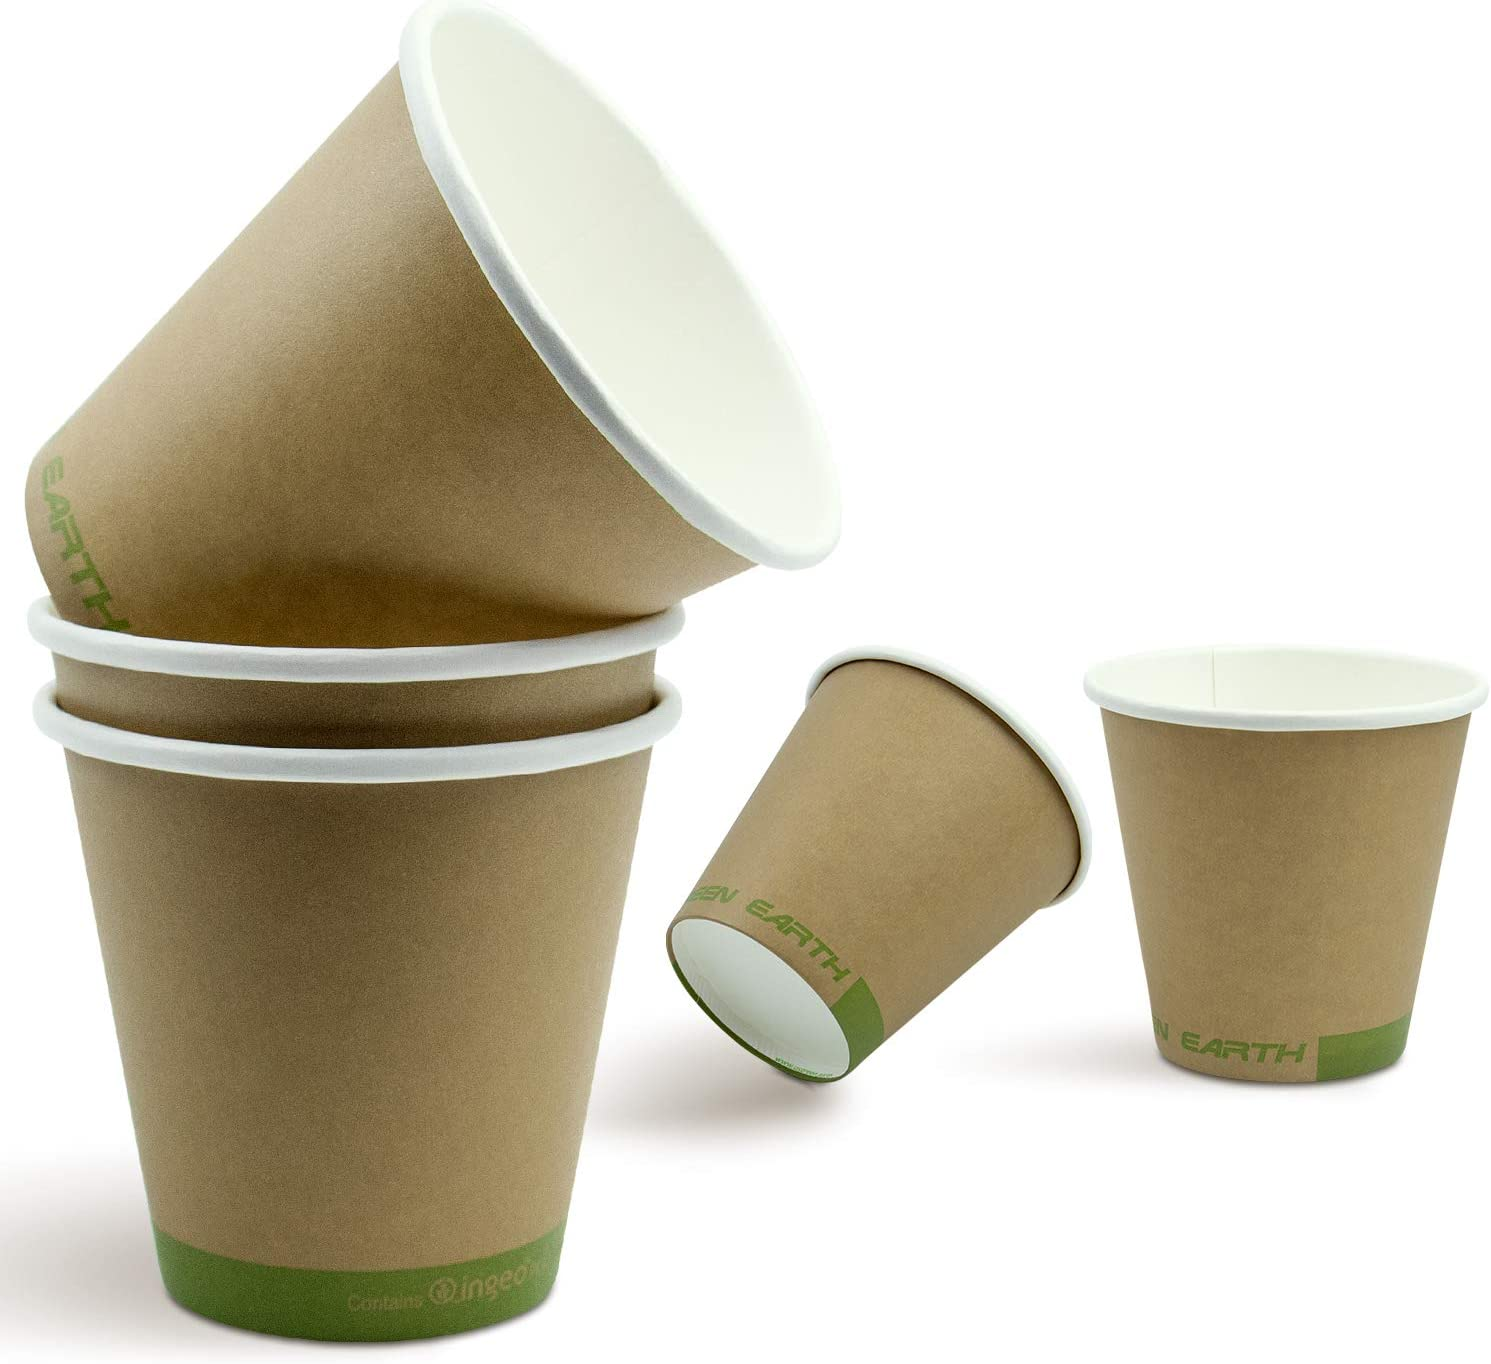 Green Earth, 8 oz. Paper Cups - For Hot and Cold Drinks - Kitchen Friendly - Sturdy and Thick (50 Pack)